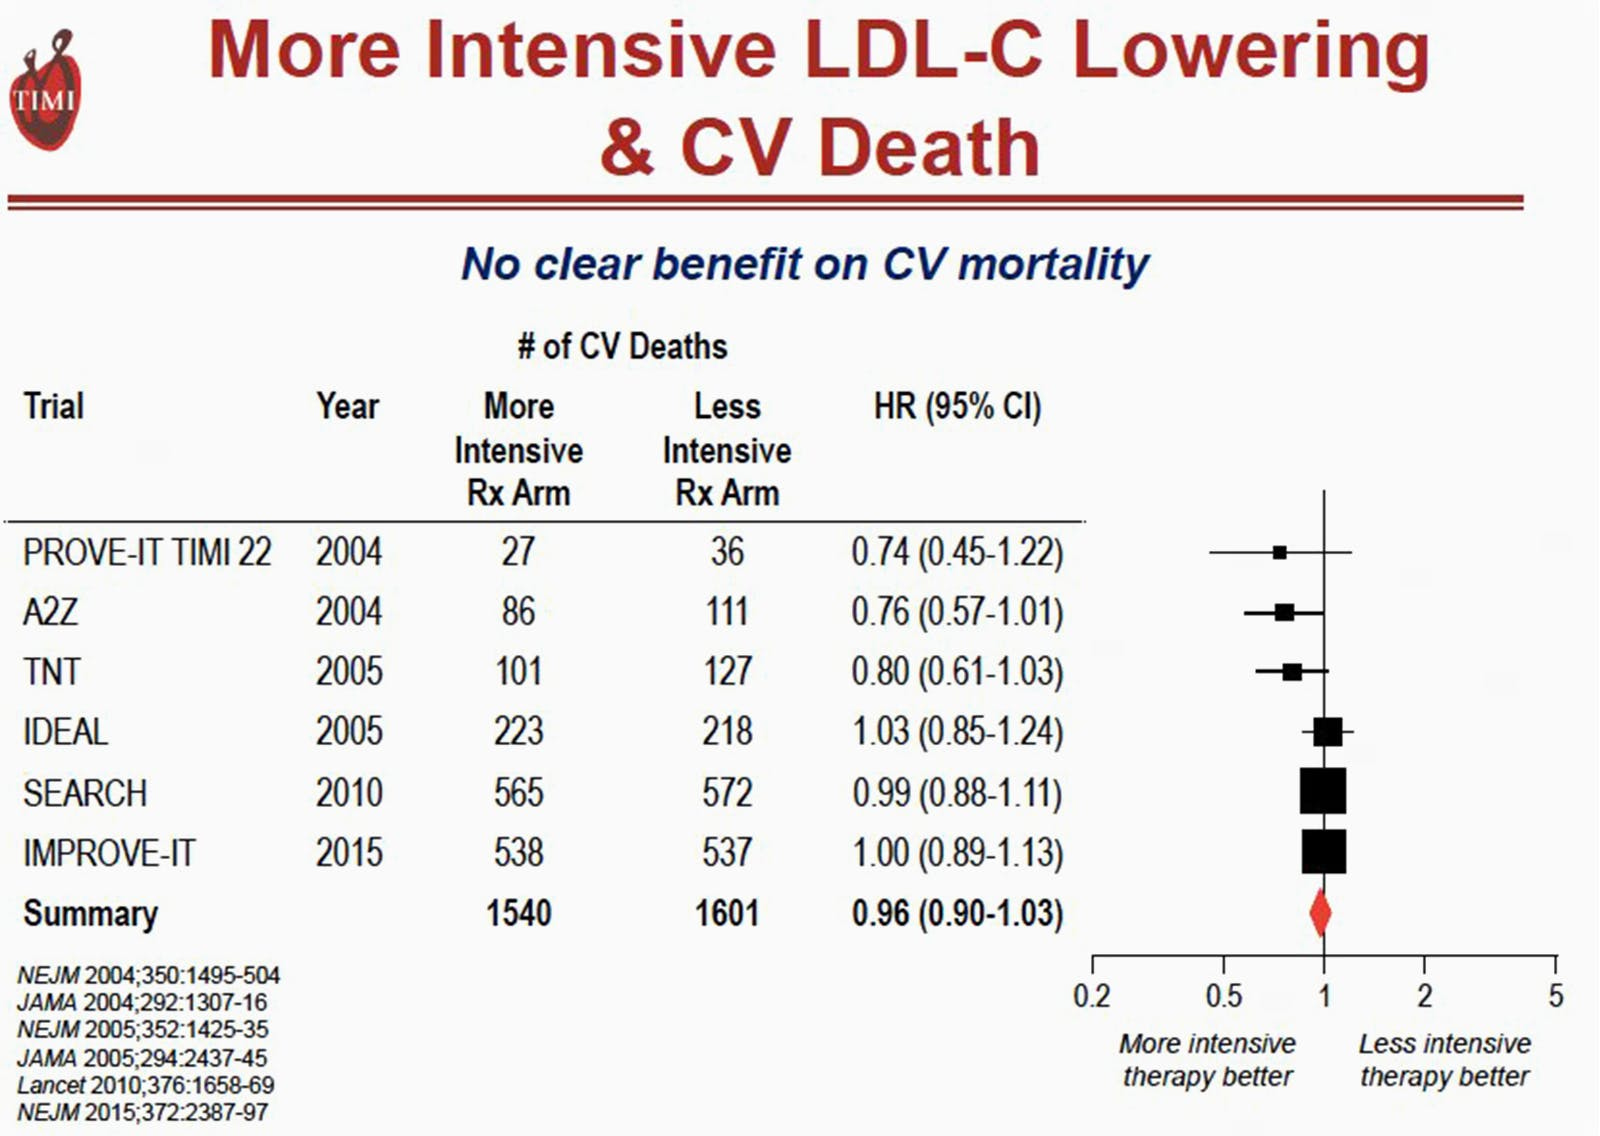 No Lowering of Cardiovascular Death Rates, in Spite of Intensive Lipid Treatment